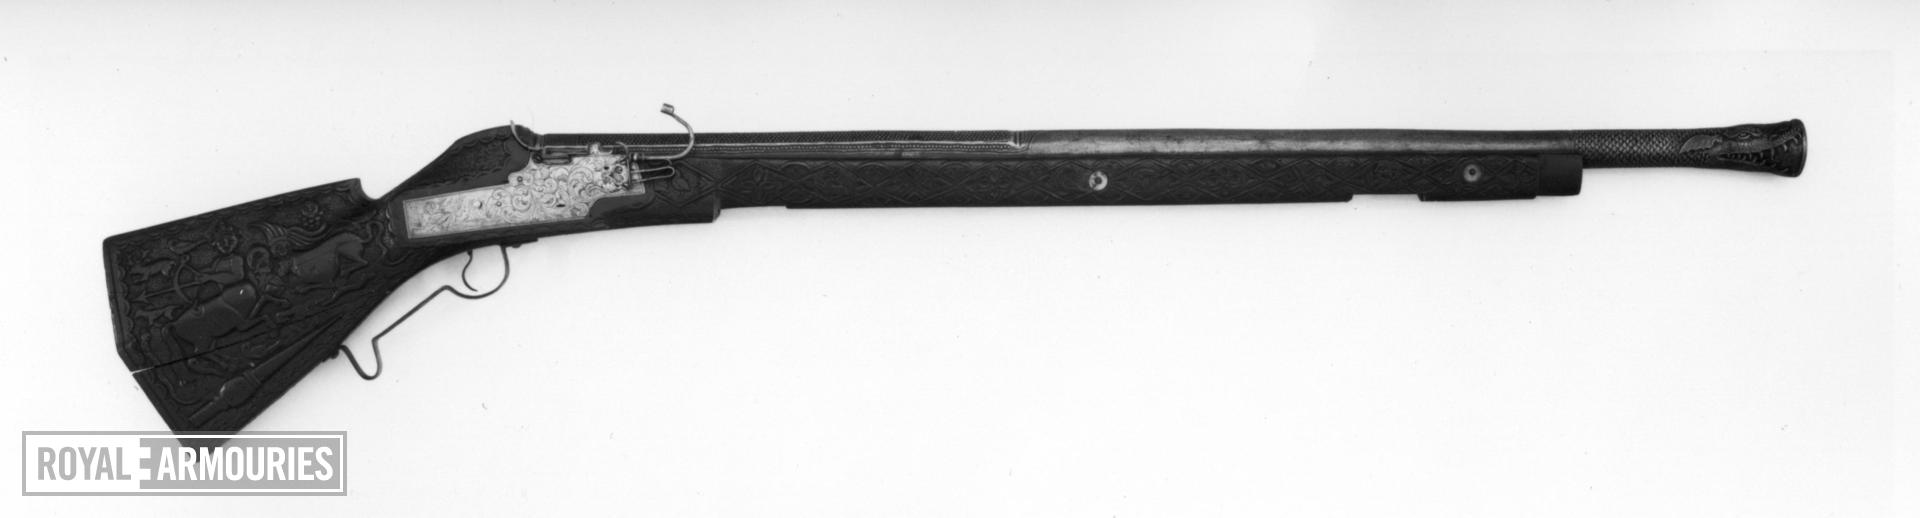 Matchlock muzzle-loading gun The barrel and stock are 19th century reproductions